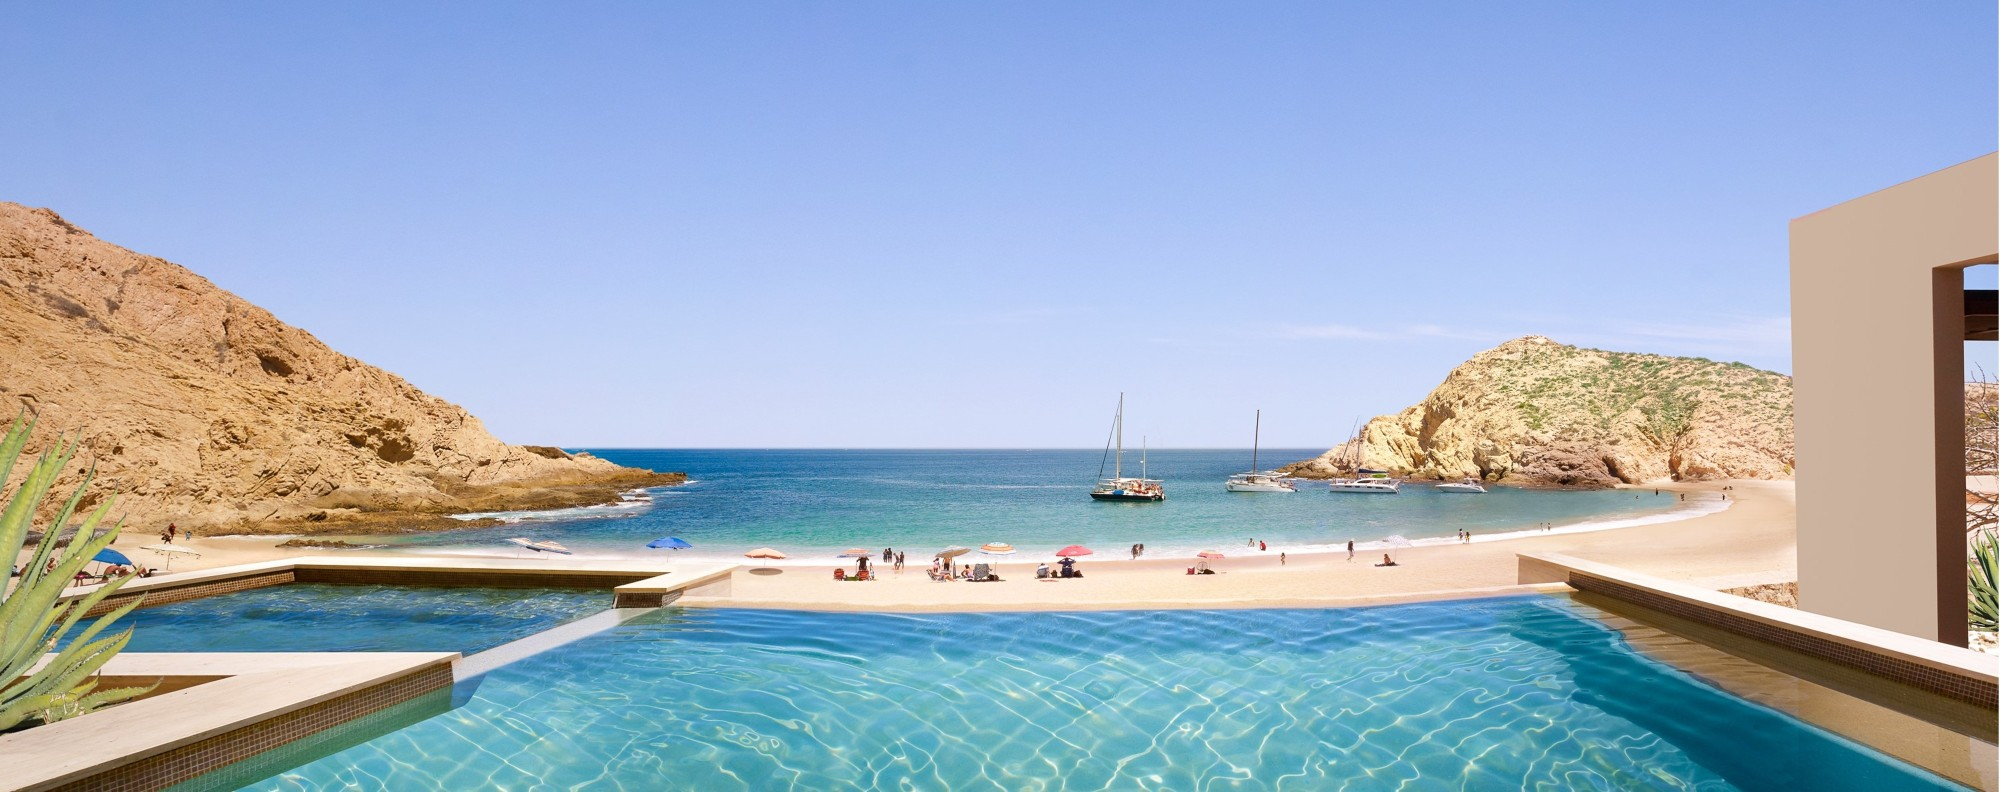 The pool at Montage Los Cabos, in Mexico.